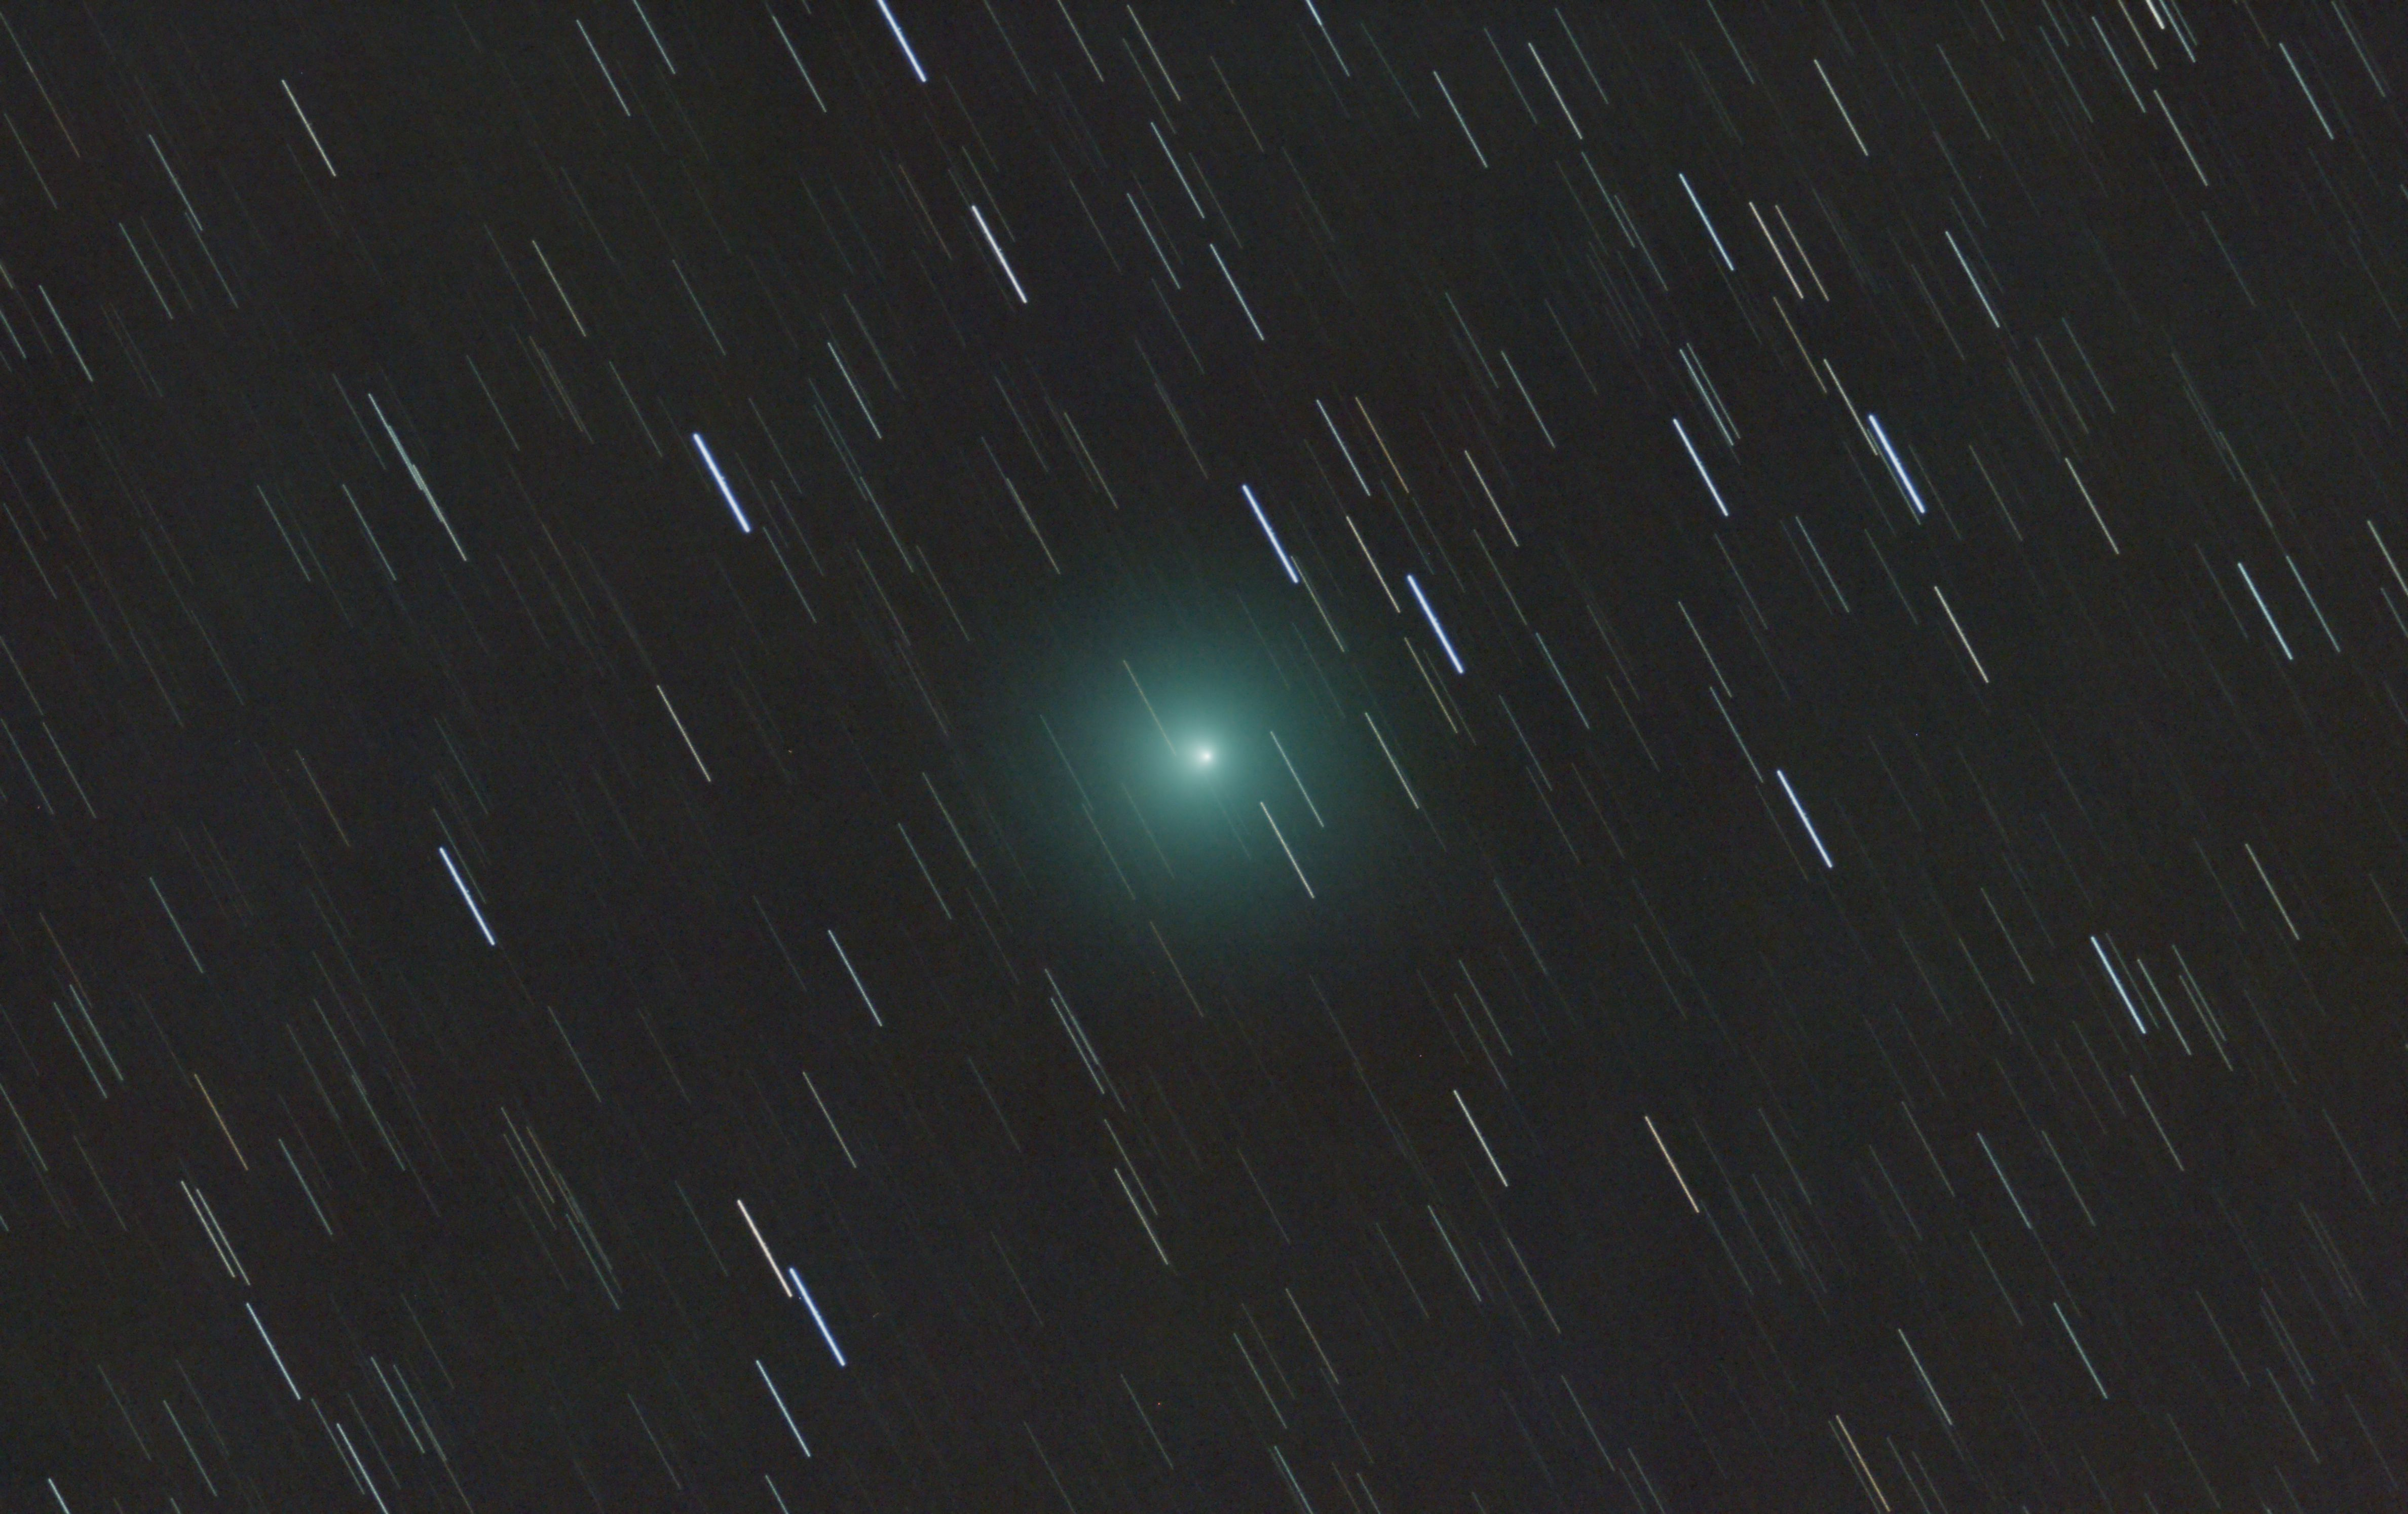 1567214264721-Comet_46P_Wirtanen_from_Madrid_2.jpg